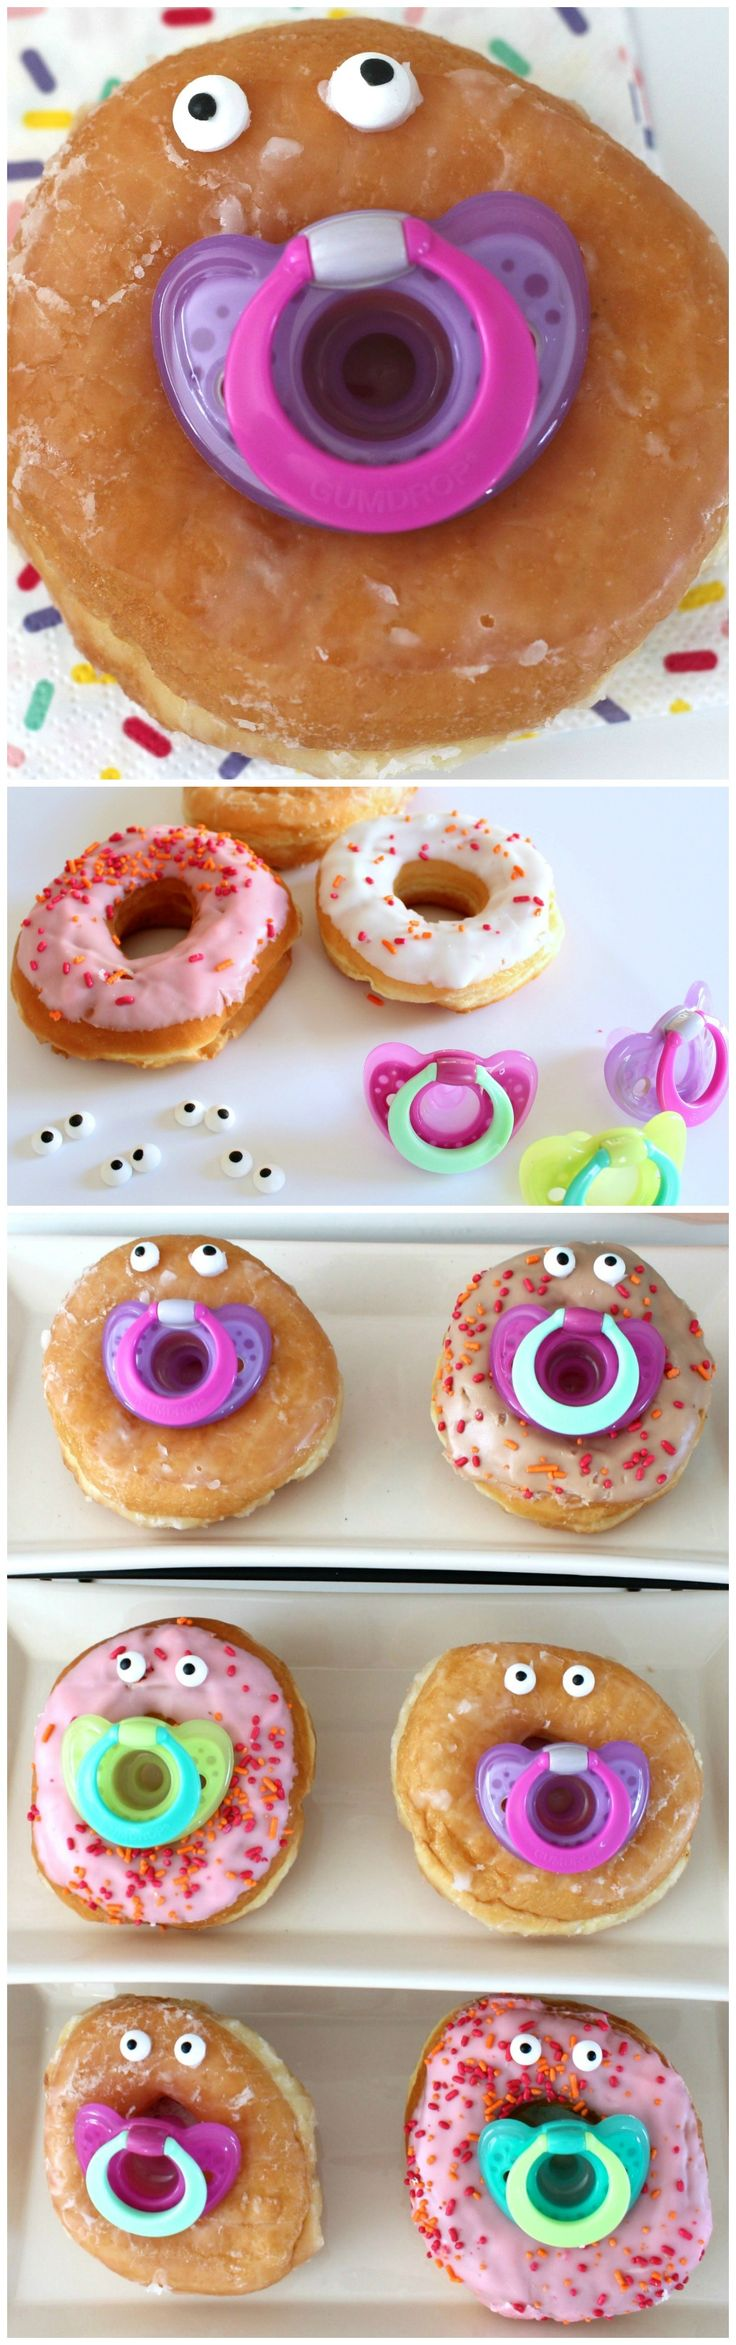 DIY Pacifier Baby Donuts ~ Display these at your next baby shower and you are guaranteed lots of smiles and laughs from party guests.